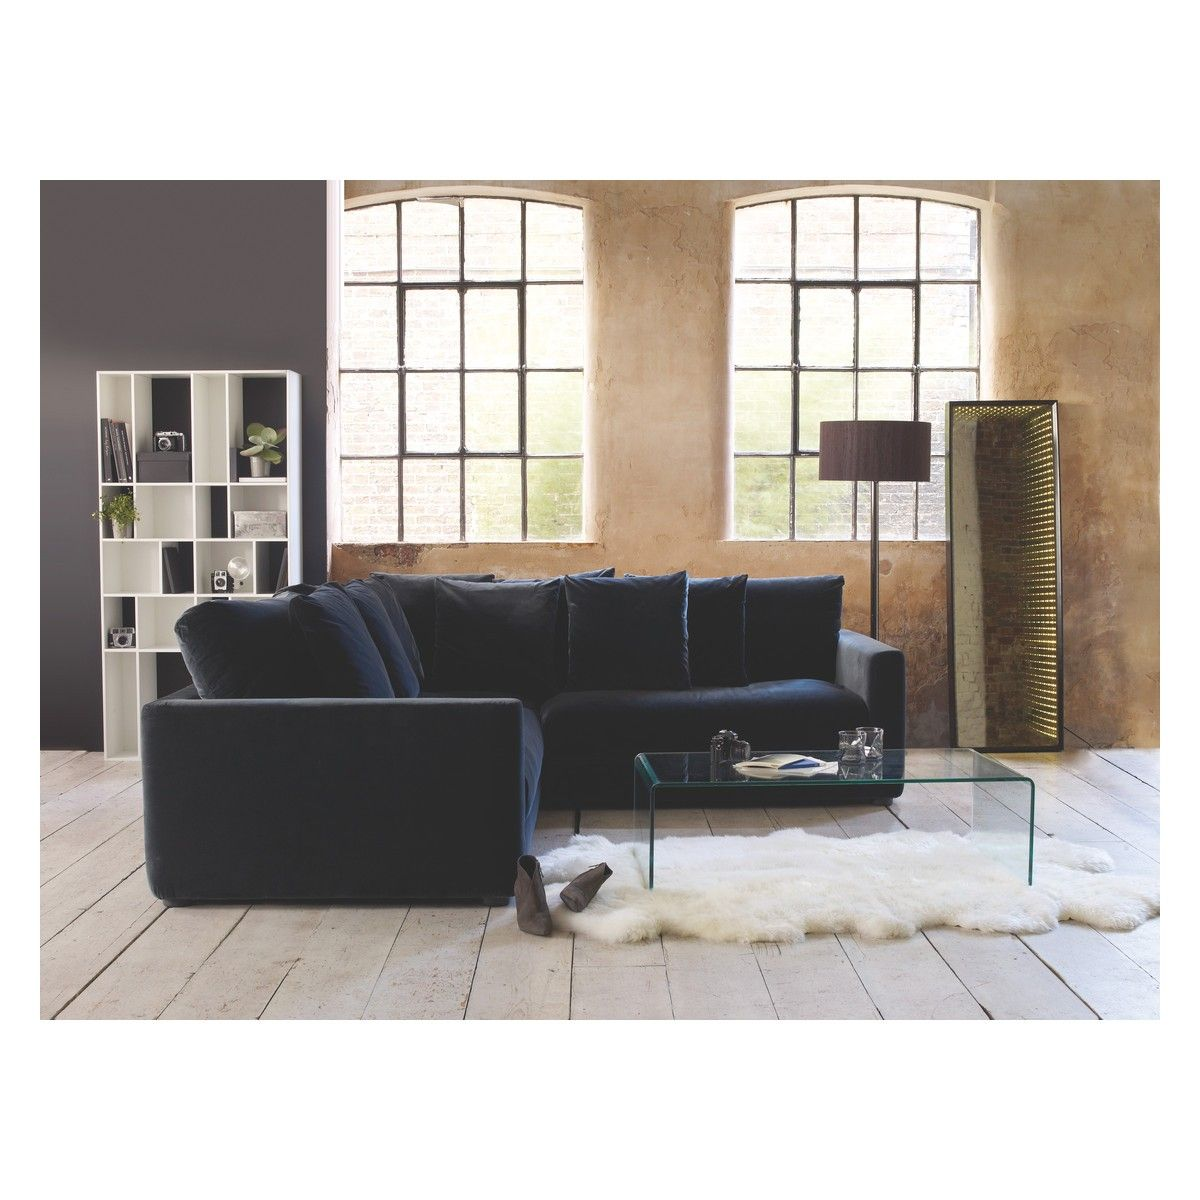 Super Rupert Dark Grey Velvet 3 Seater Left Arm Sofa Buy Now At Caraccident5 Cool Chair Designs And Ideas Caraccident5Info